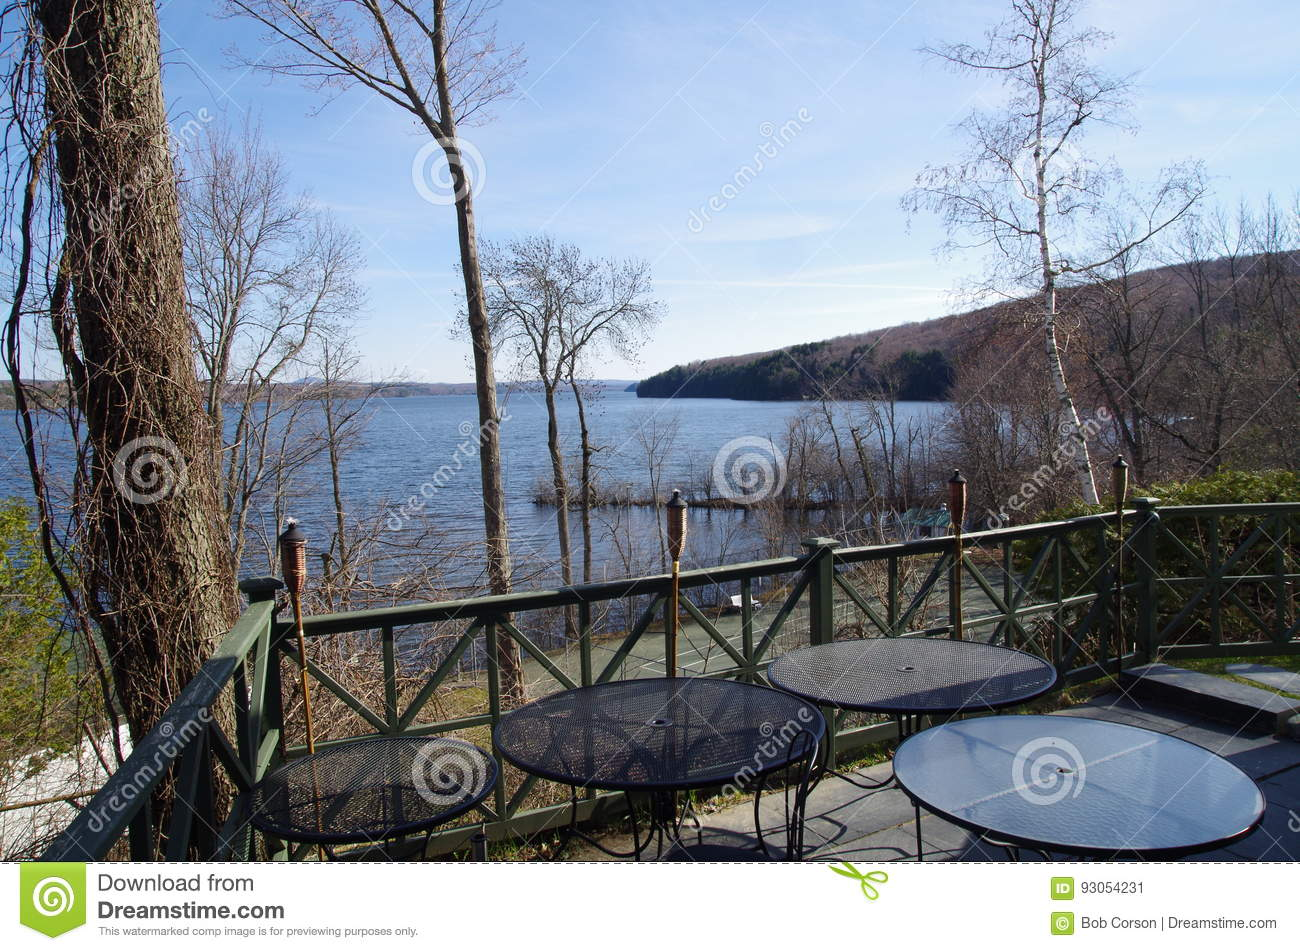 Lake Massawippi in the Eastern Townships of Quebec